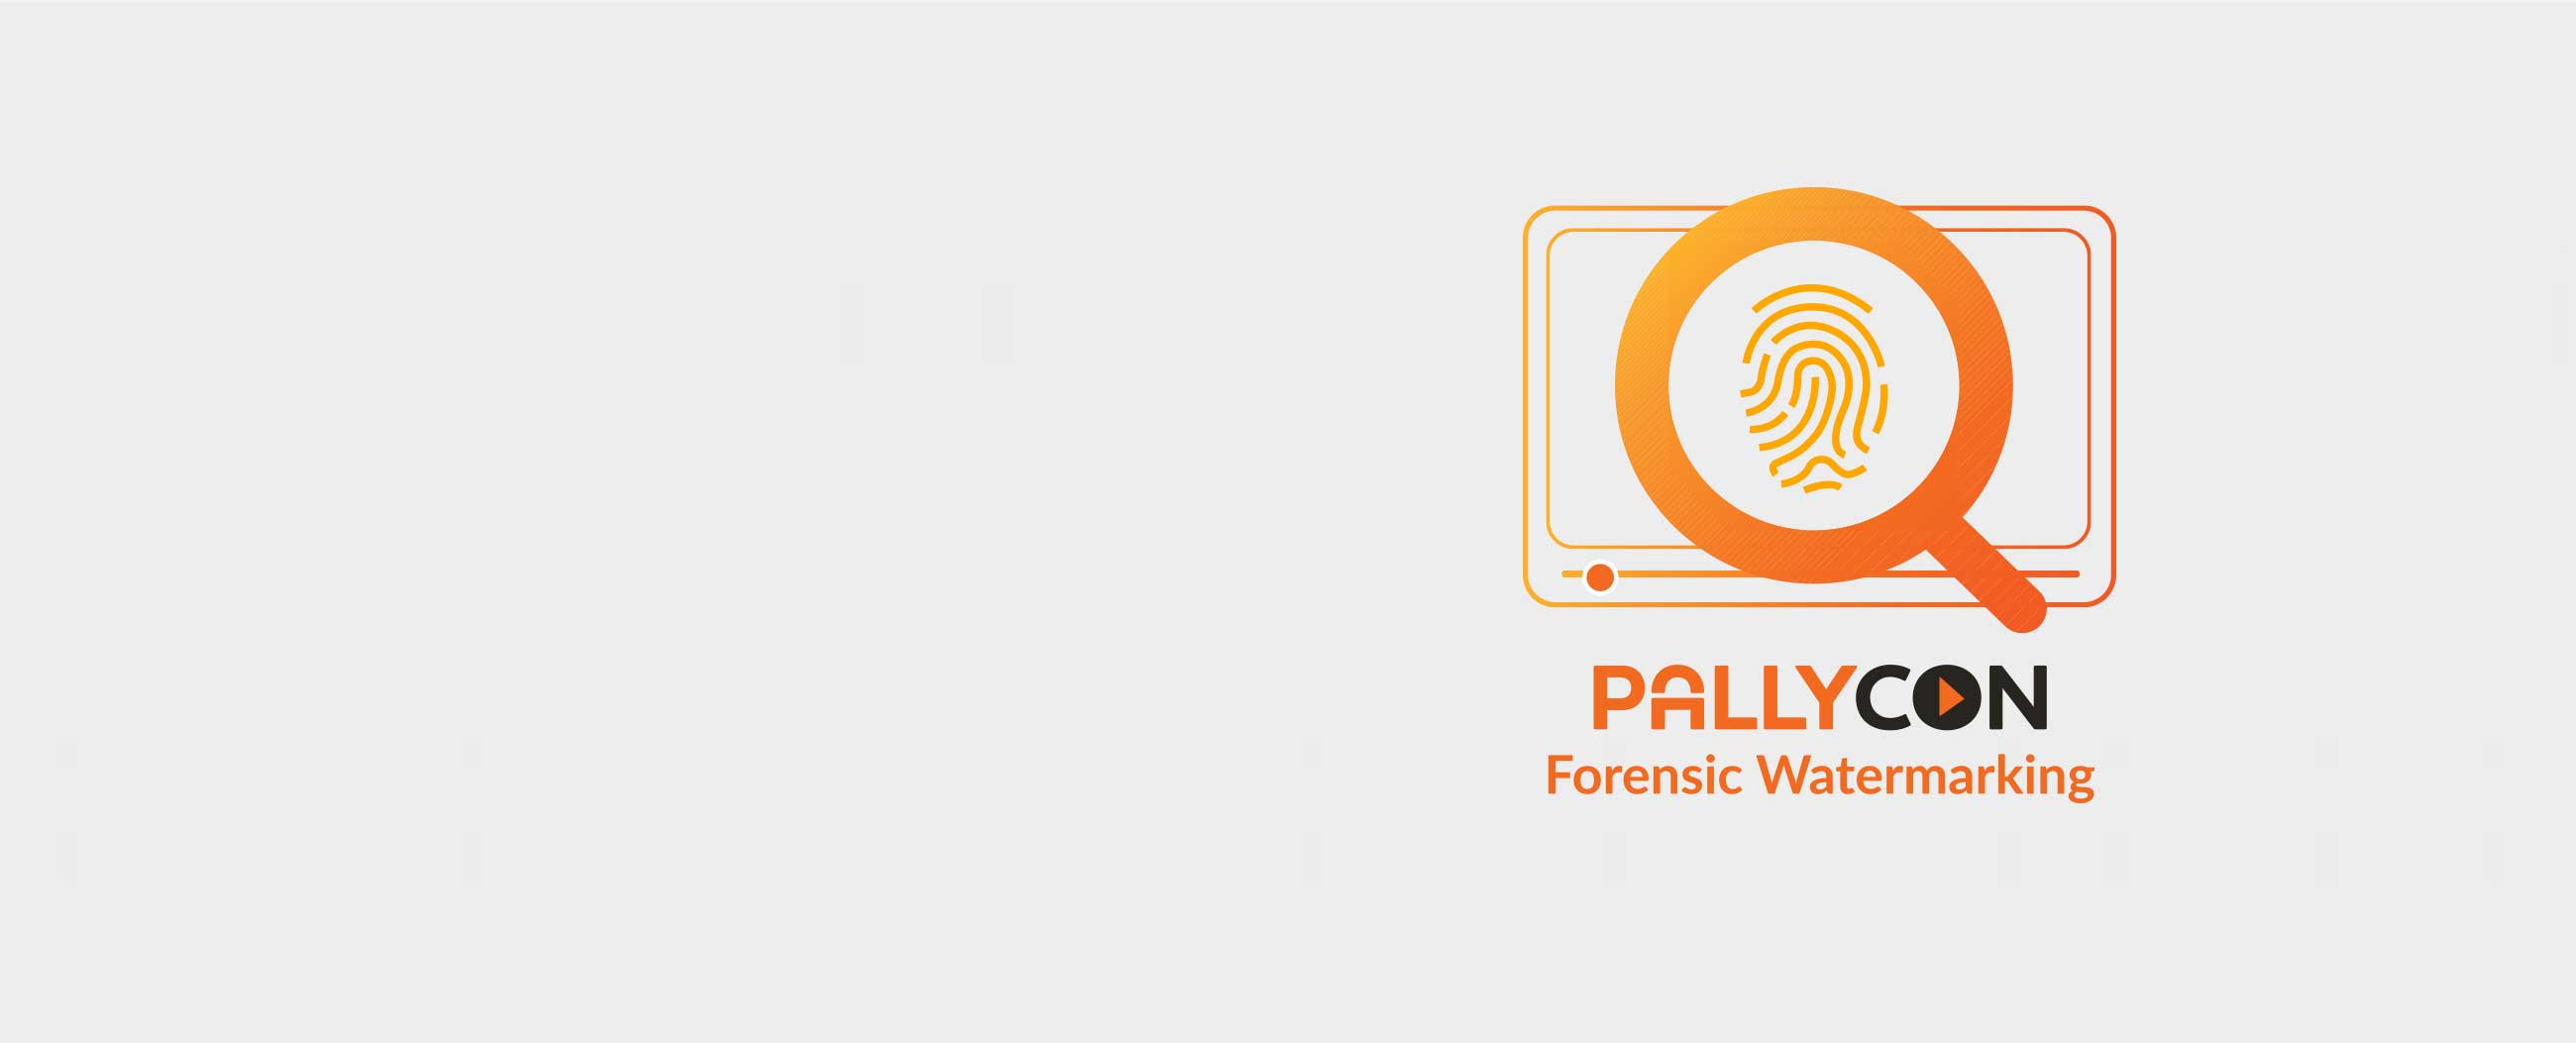 PallyCon Forensic Watermarking Service